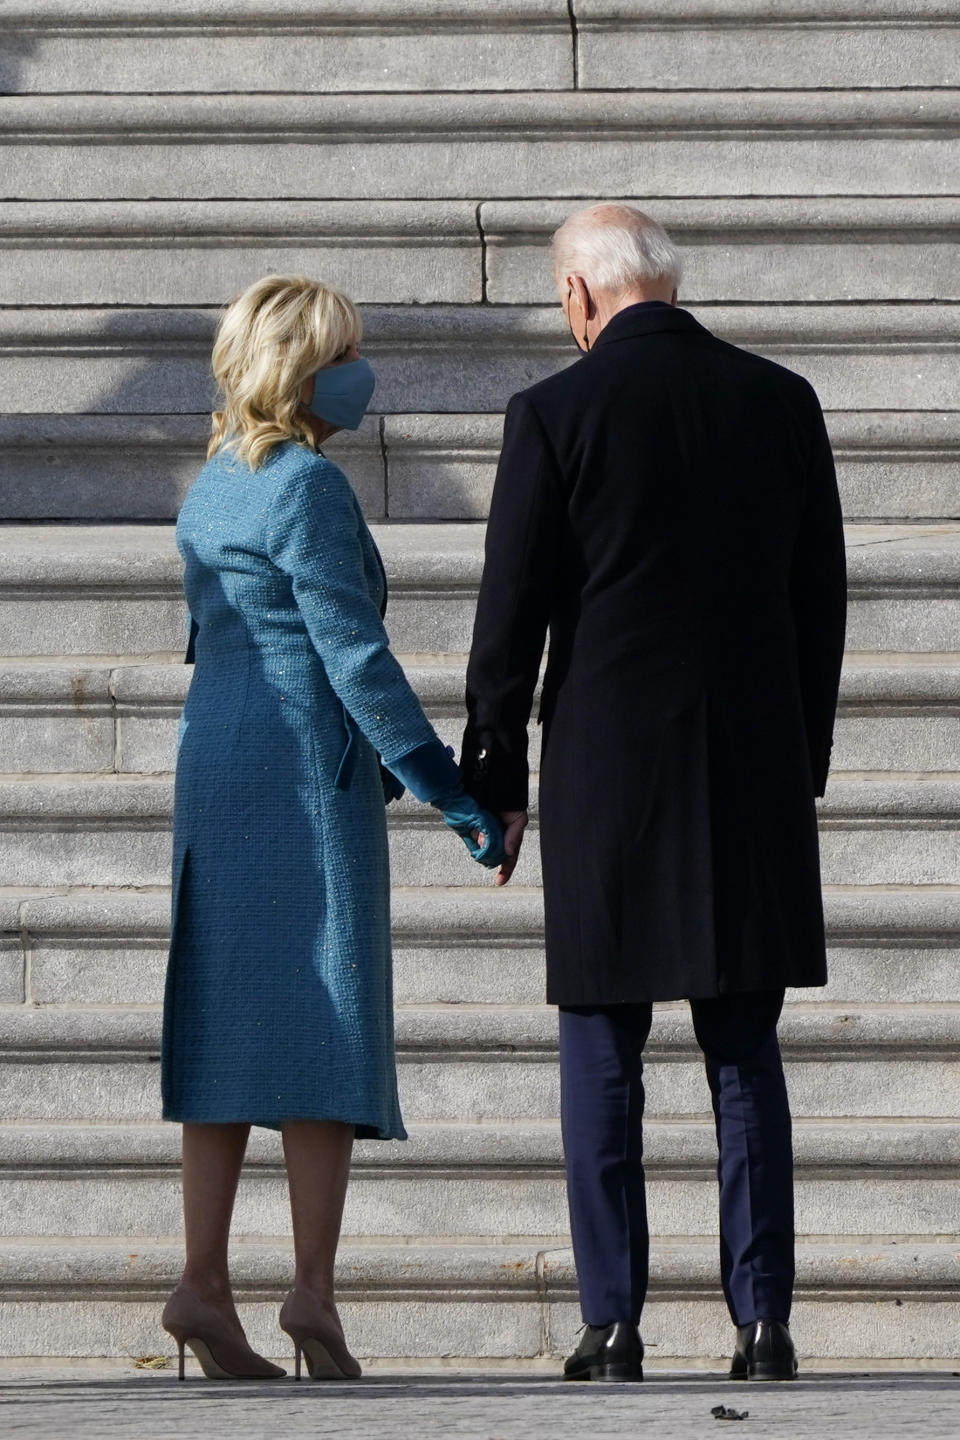 President-elect Joe Biden and his wife Jill Biden arrive at the steps of the U.S. Capitol for the start of the official inauguration ceremonies, in Washington, Wednesday, Jan. 20, 2021. (AP Photo/J. Scott Applewhite)